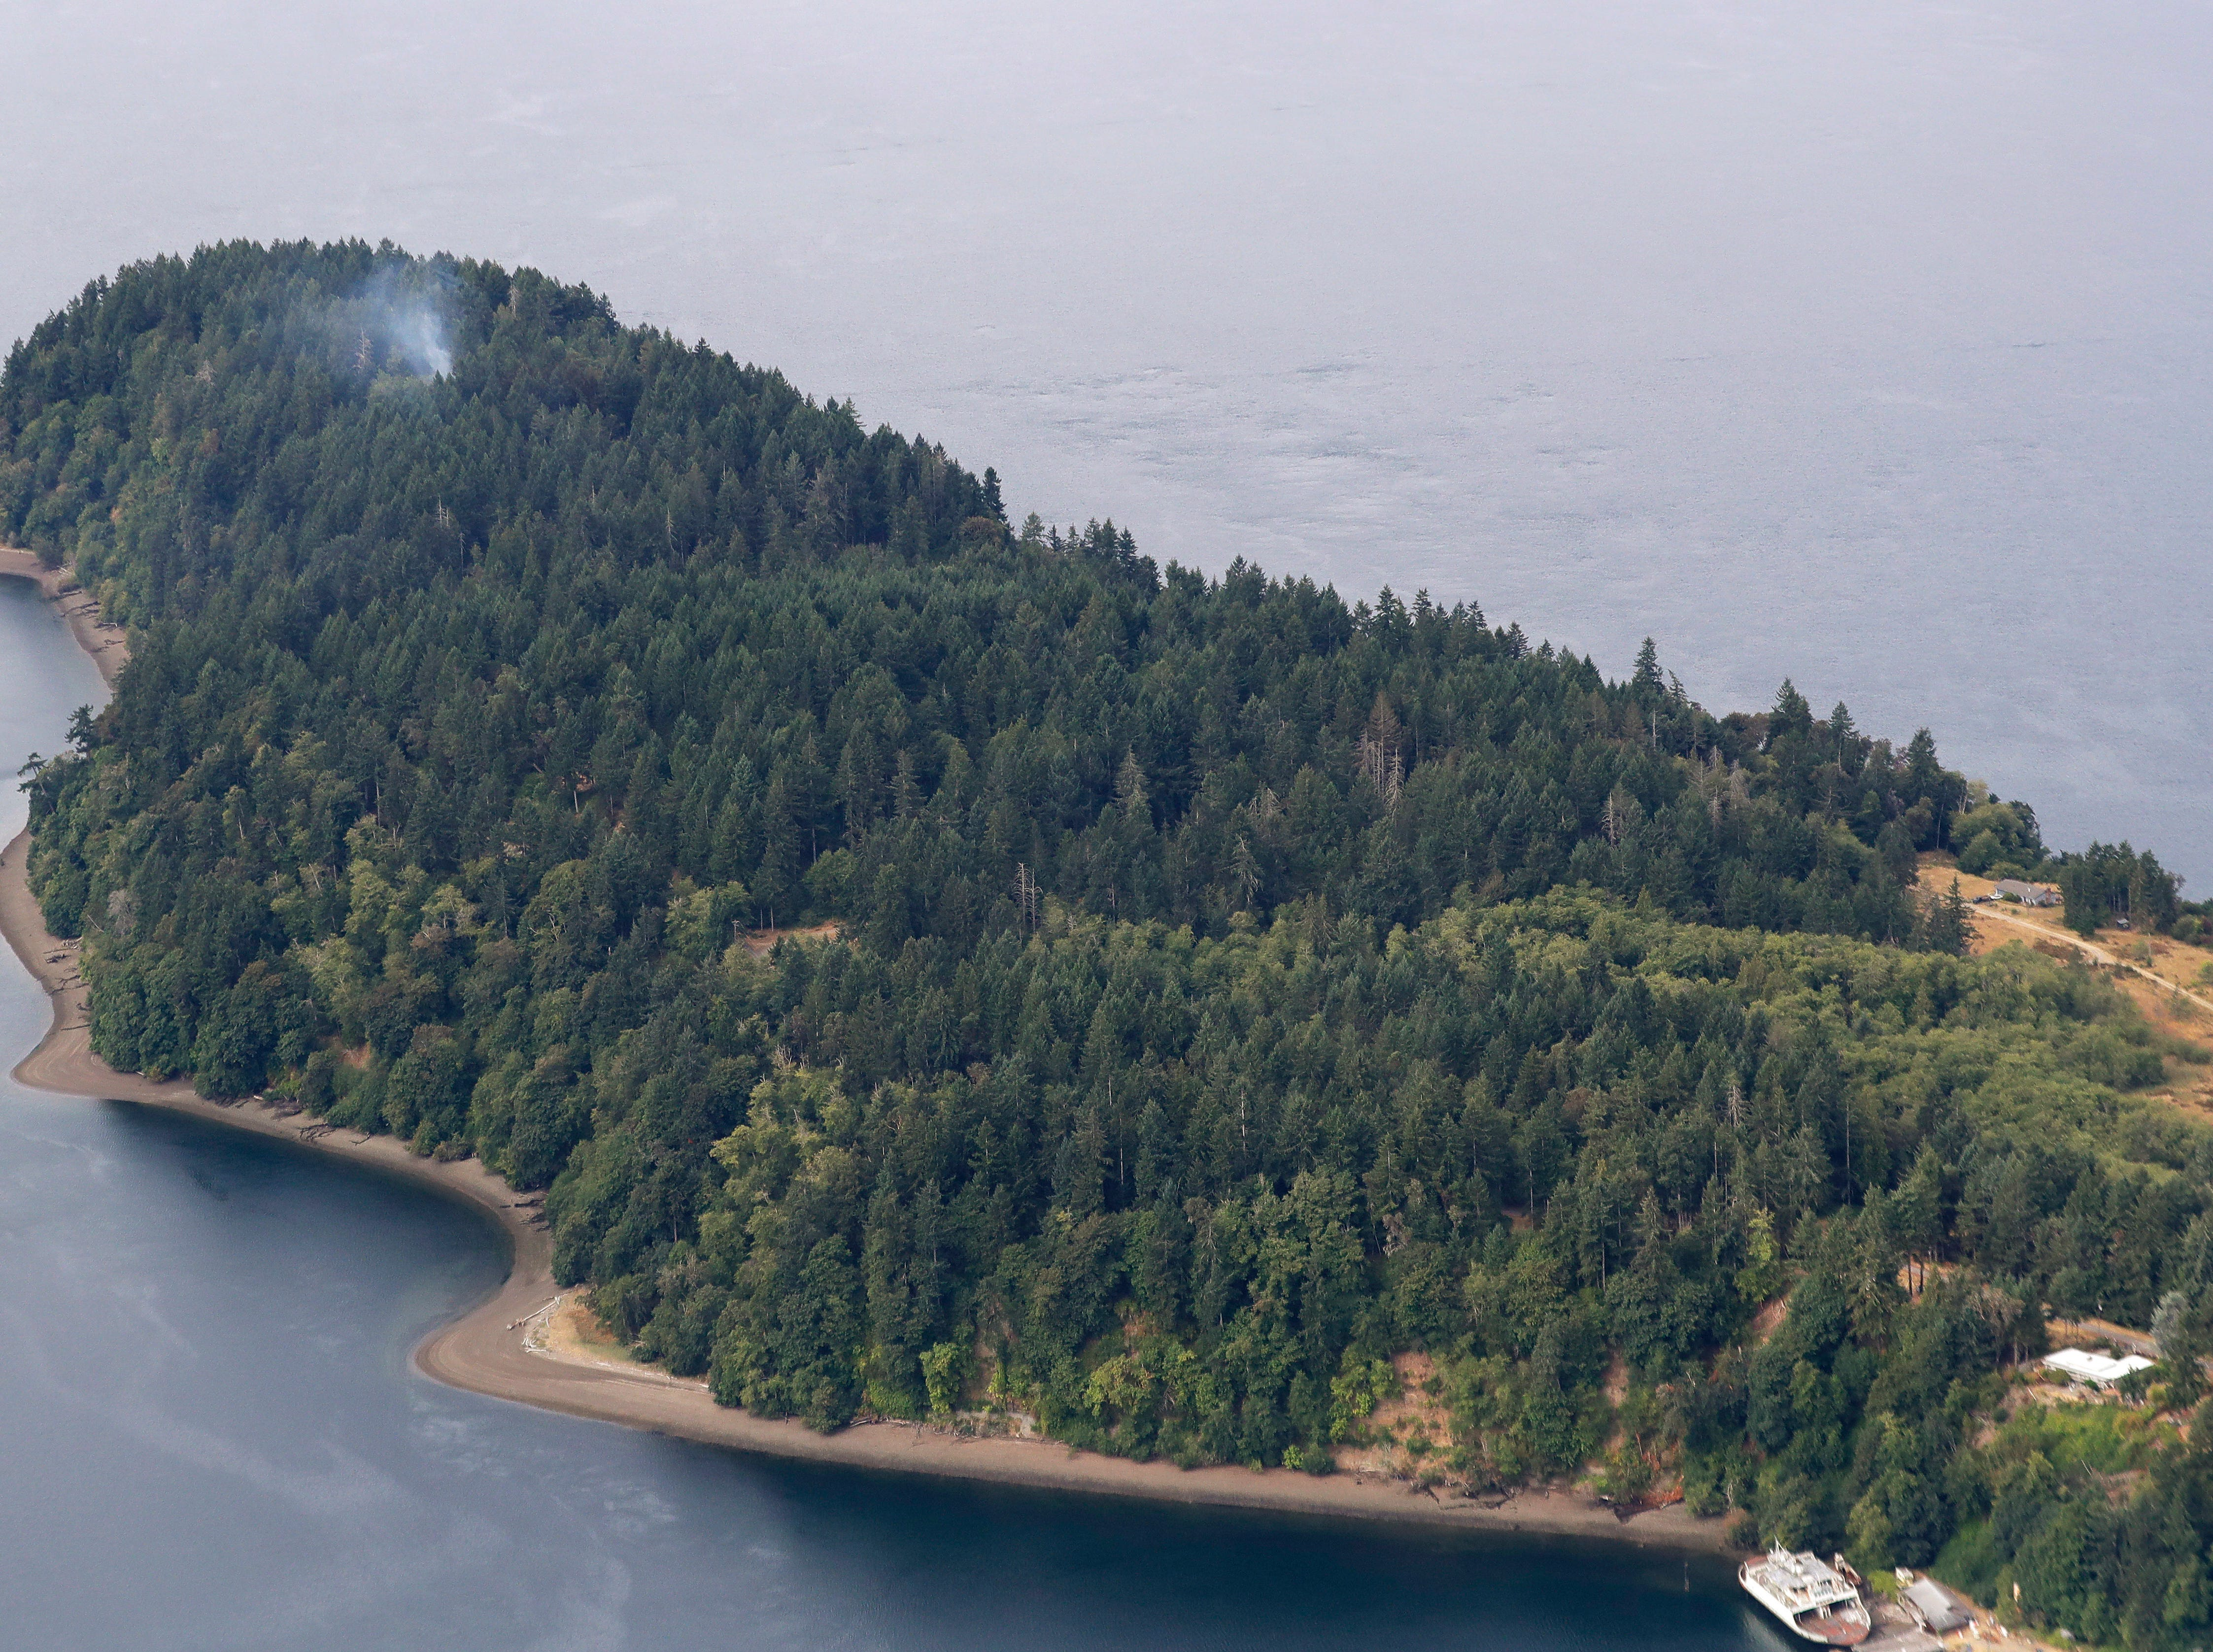 Smoke rises from the site on Ketron Island in Washington state where an Horizon Air turboprop plane crashed Friday after it was stolen from Sea-Tac International Airport as seen from the air, Saturday, Aug. 11, 2018, near Steilacoom, Wash.